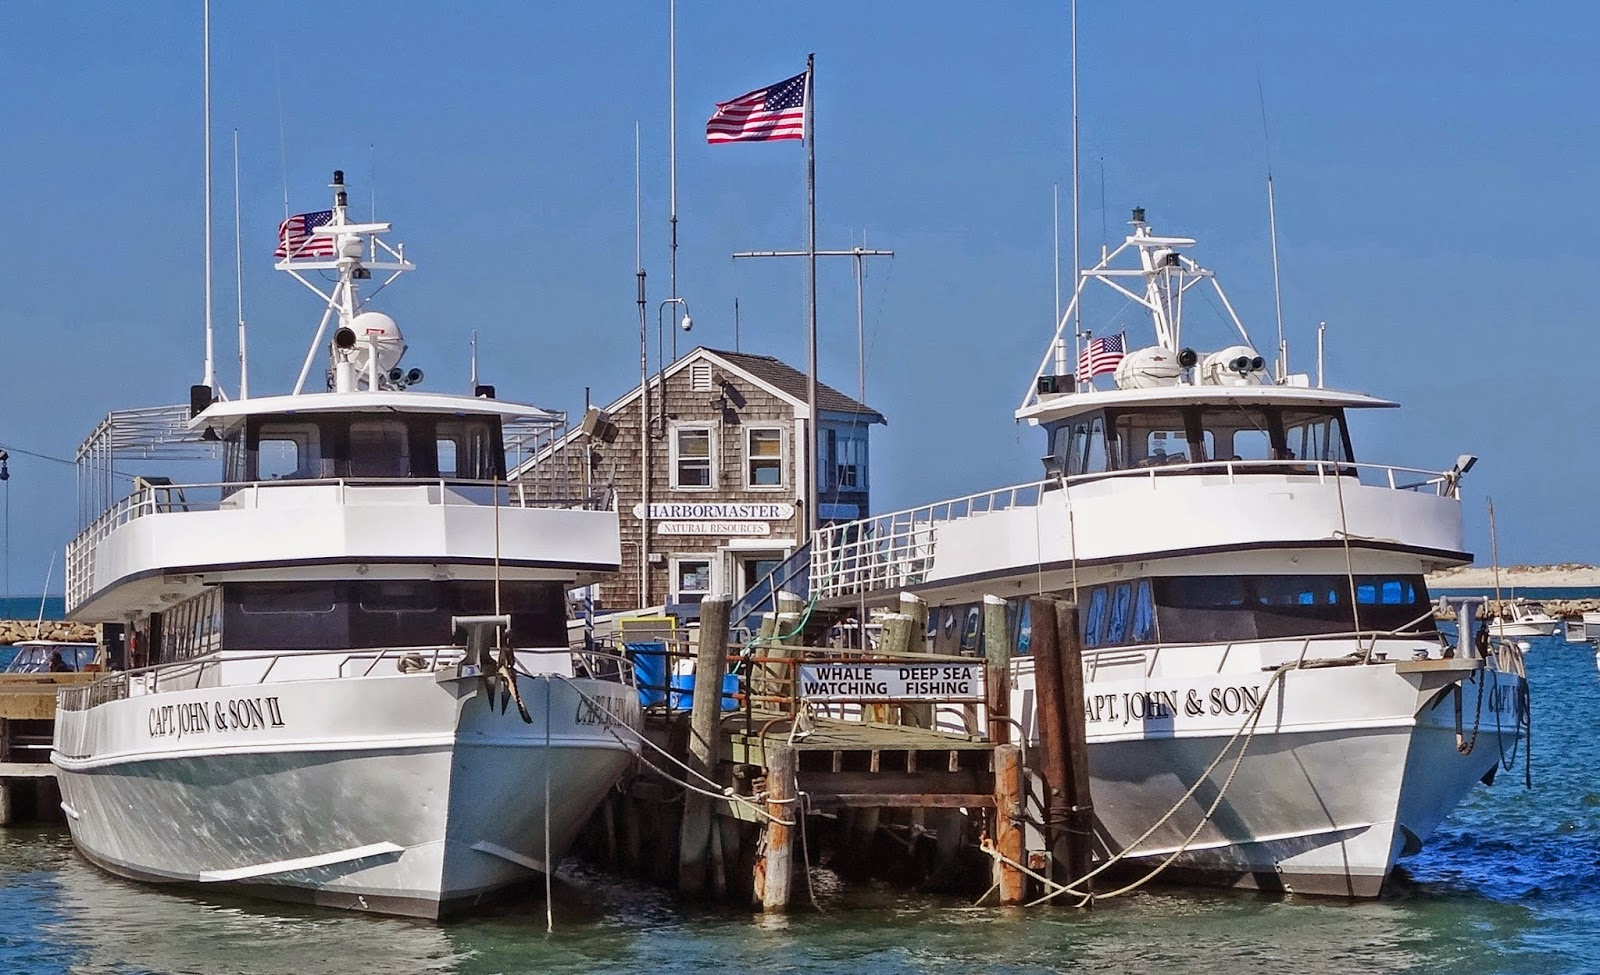 Joe 39 s retirement blog at the waterfront plymouth for Fishing charters plymouth ma